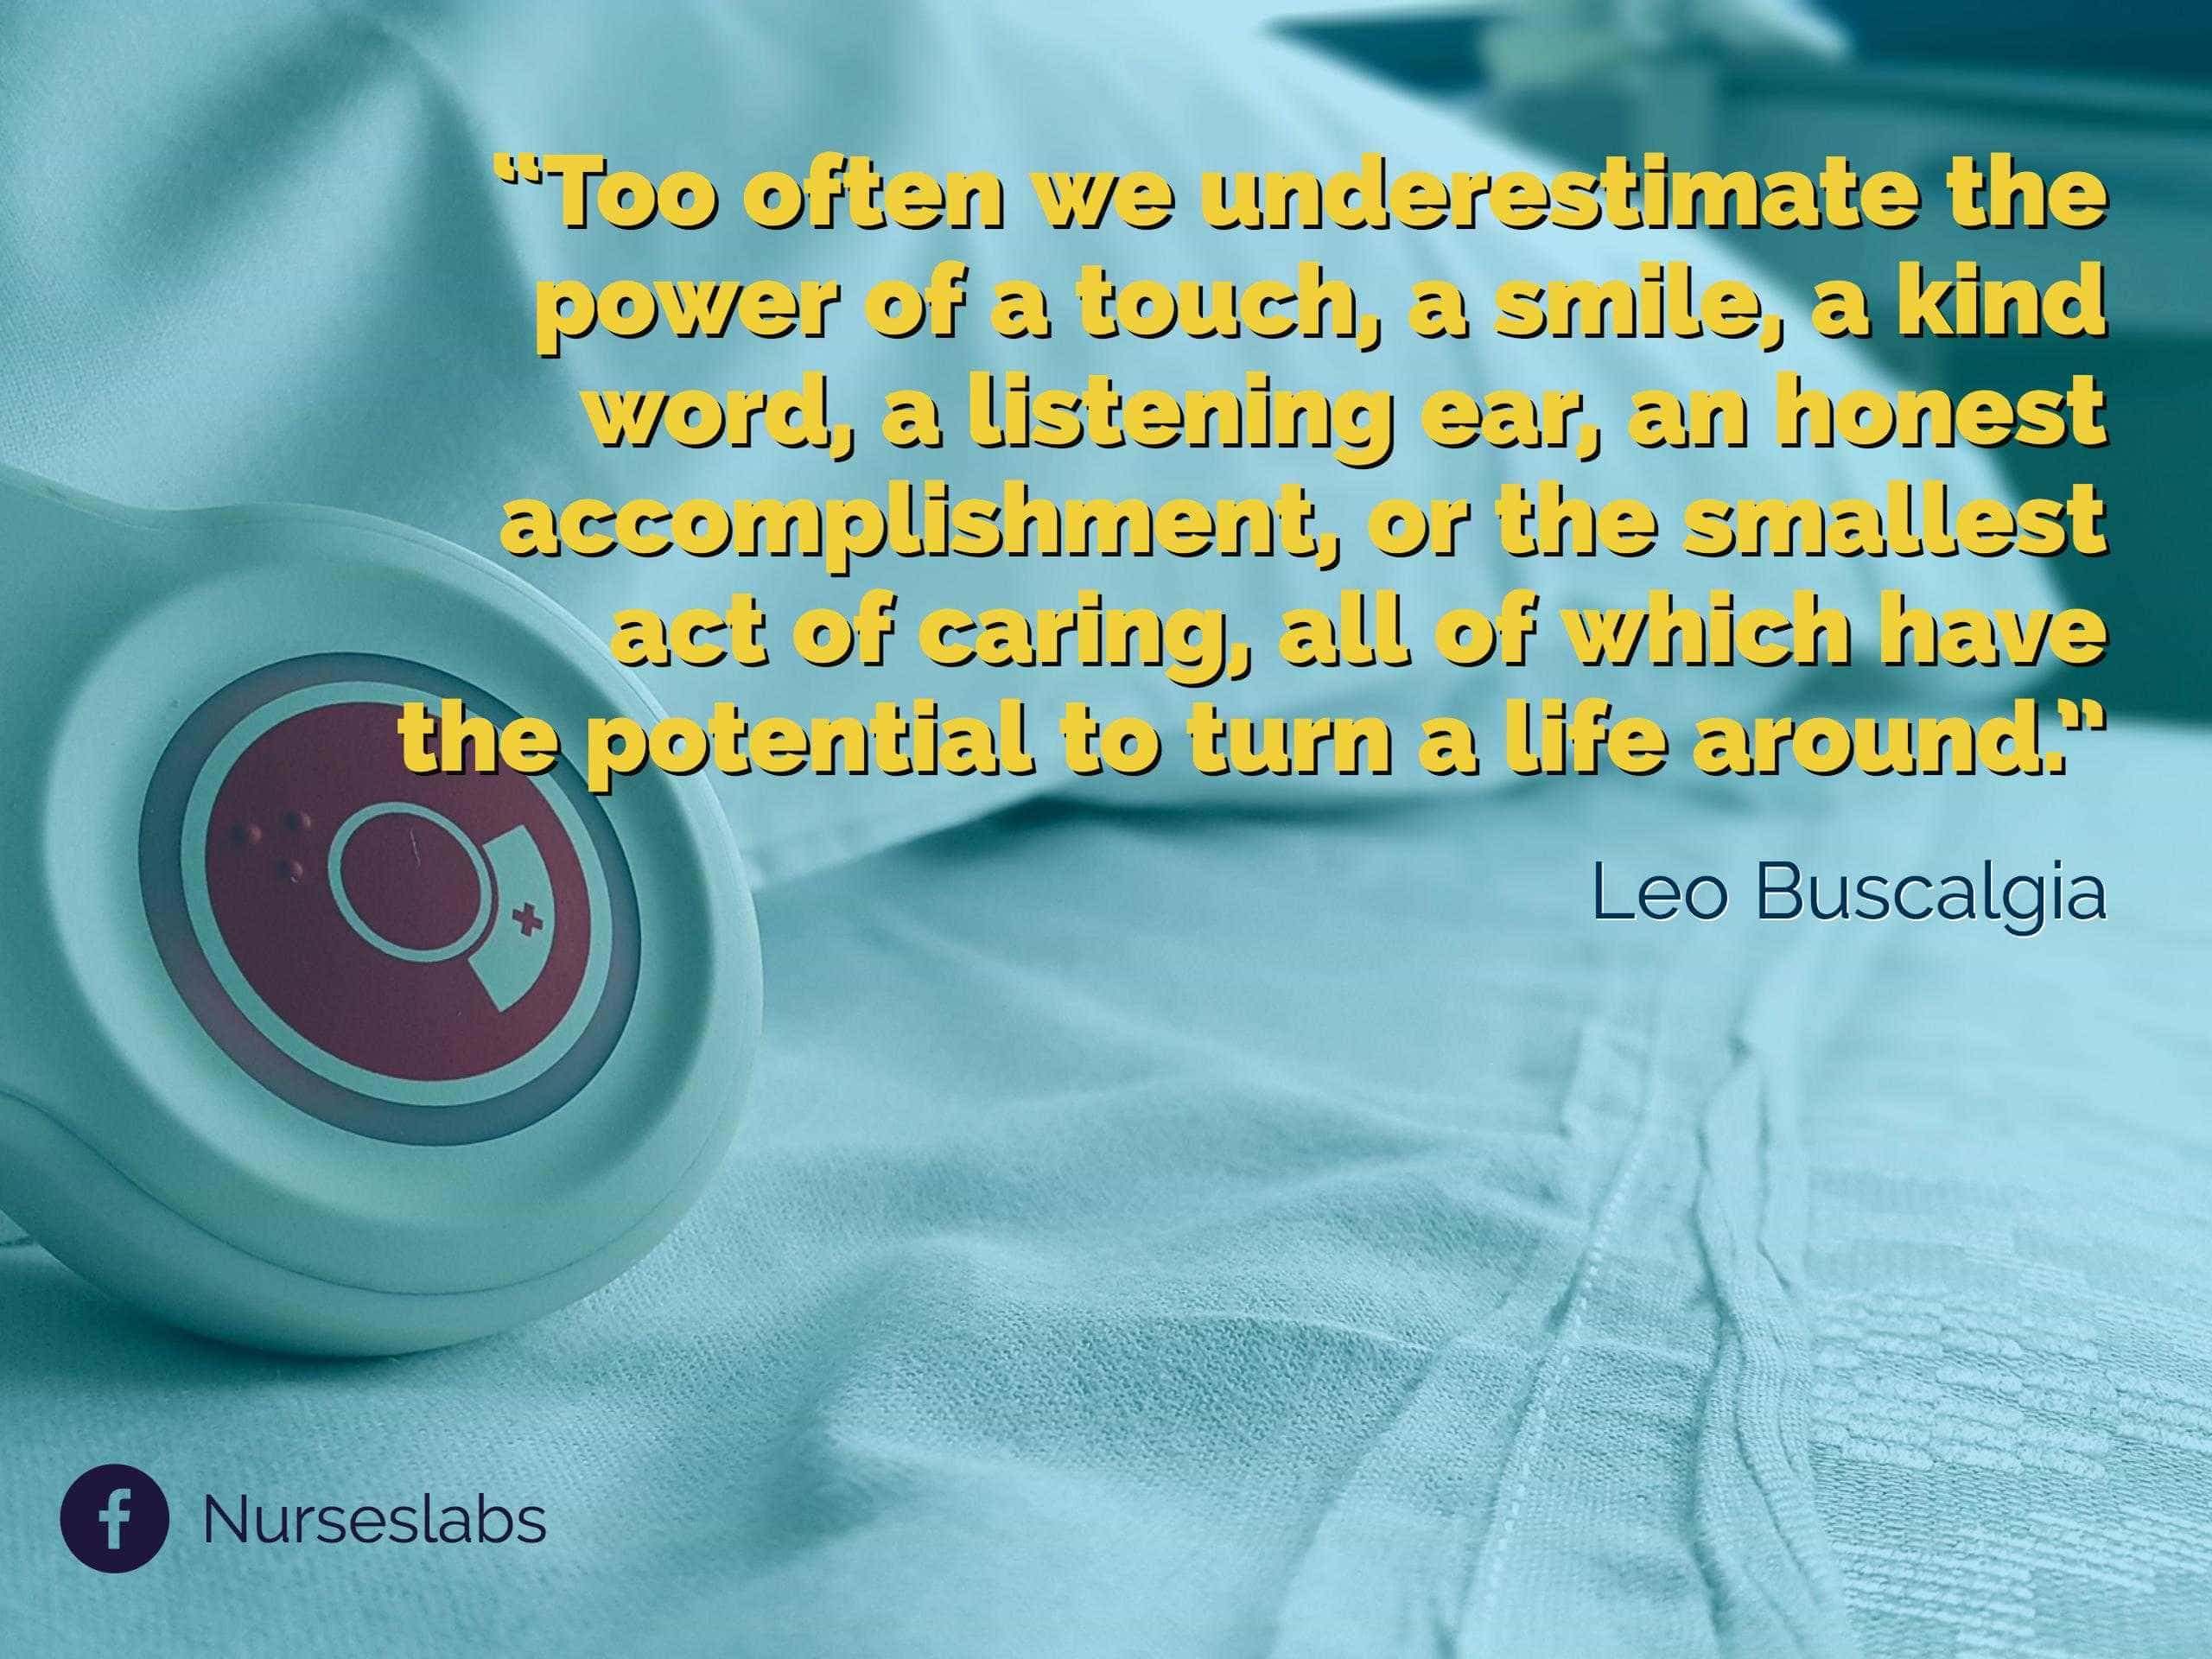 """Too often we underestimate the power of a touch, a smile, a kind word, a listening ear, an honest accomplishment, or the smallest act of caring, all of which have the potential to turn a life around."" – Leo Buscaglia"